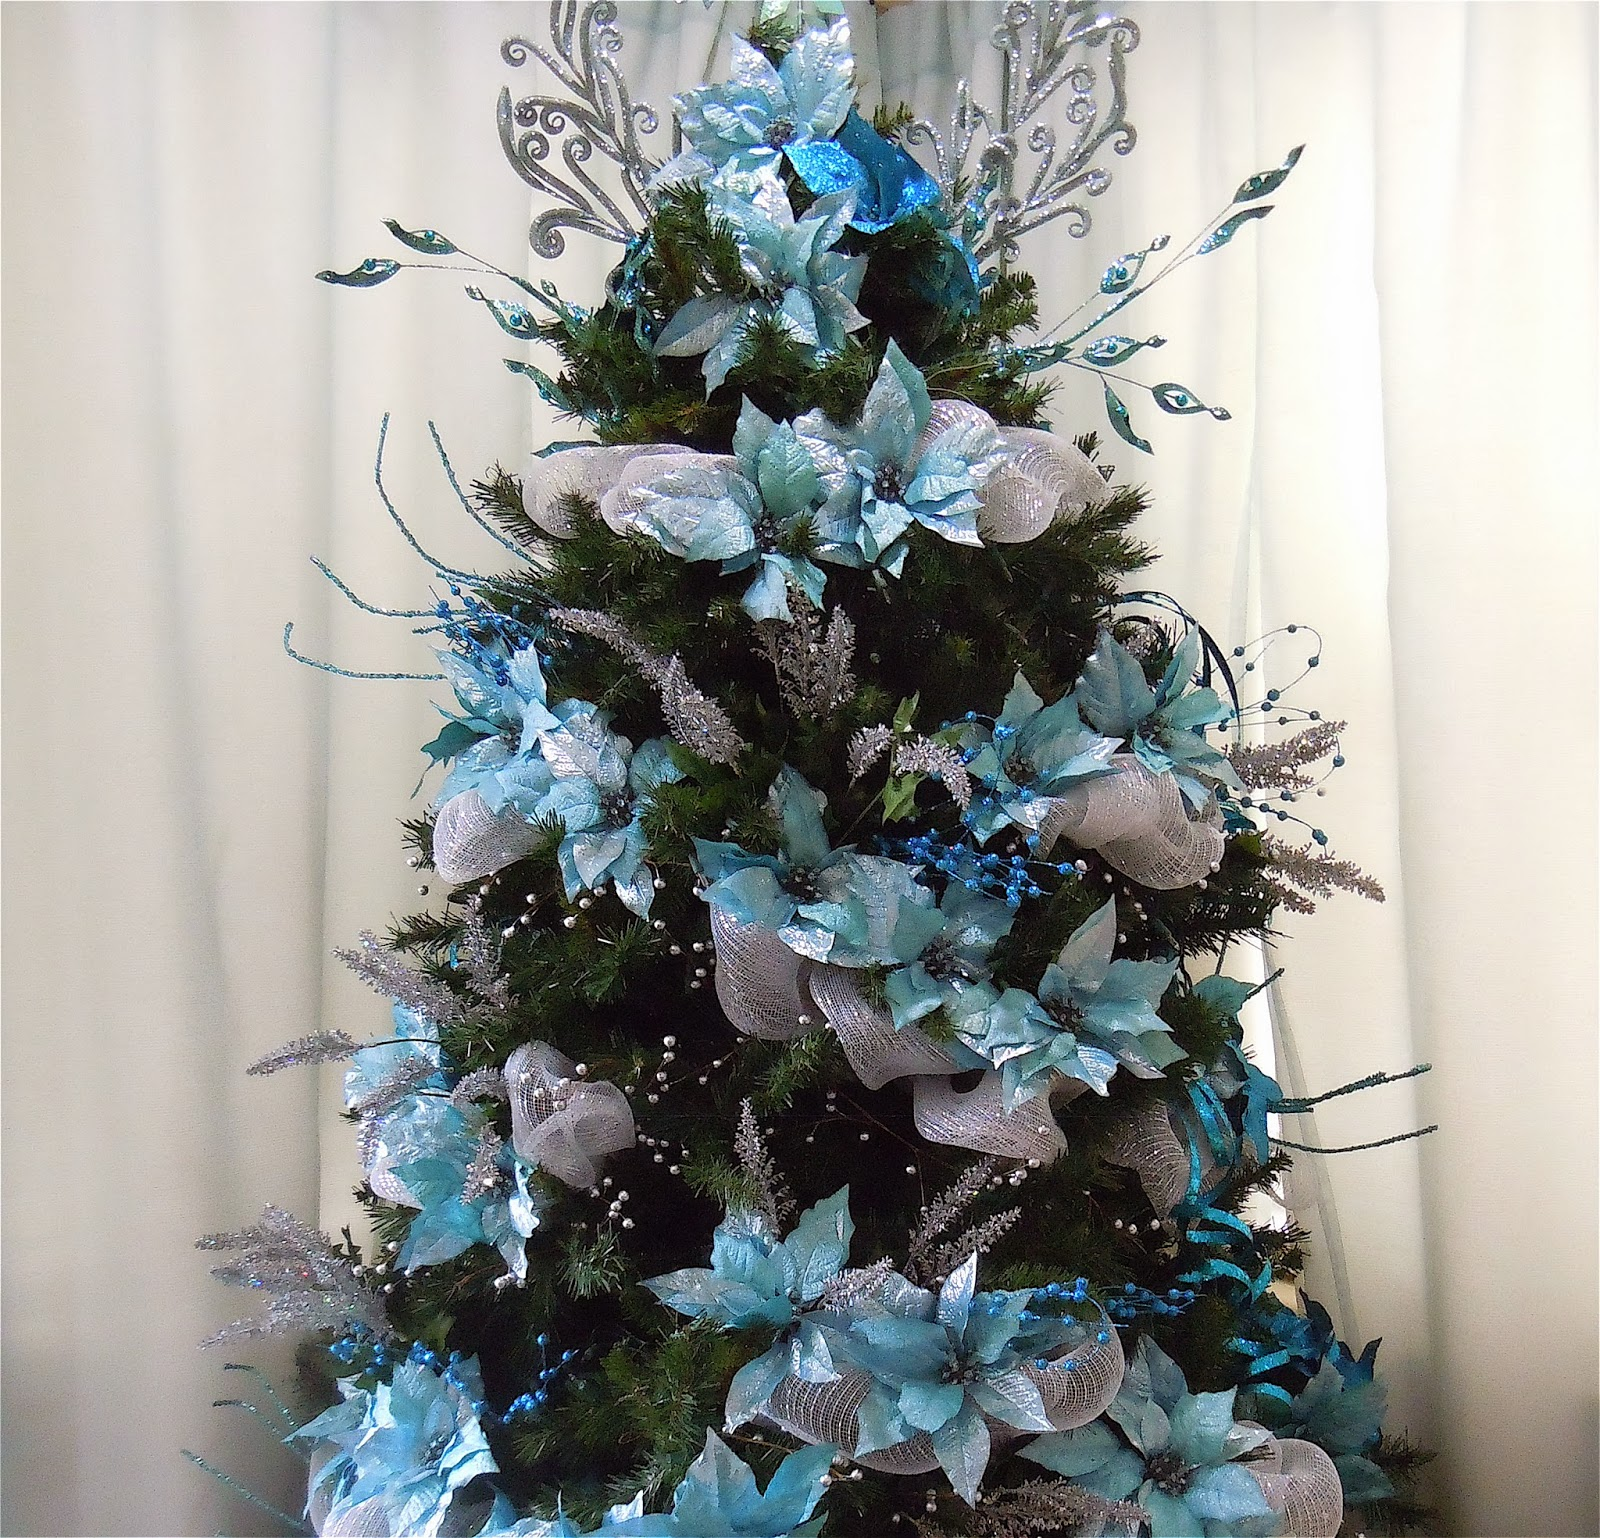 blue and silver decorated christmas tree christmas decor styles blue silver christmas tree decorations christmas tree theme blue and silver hitez